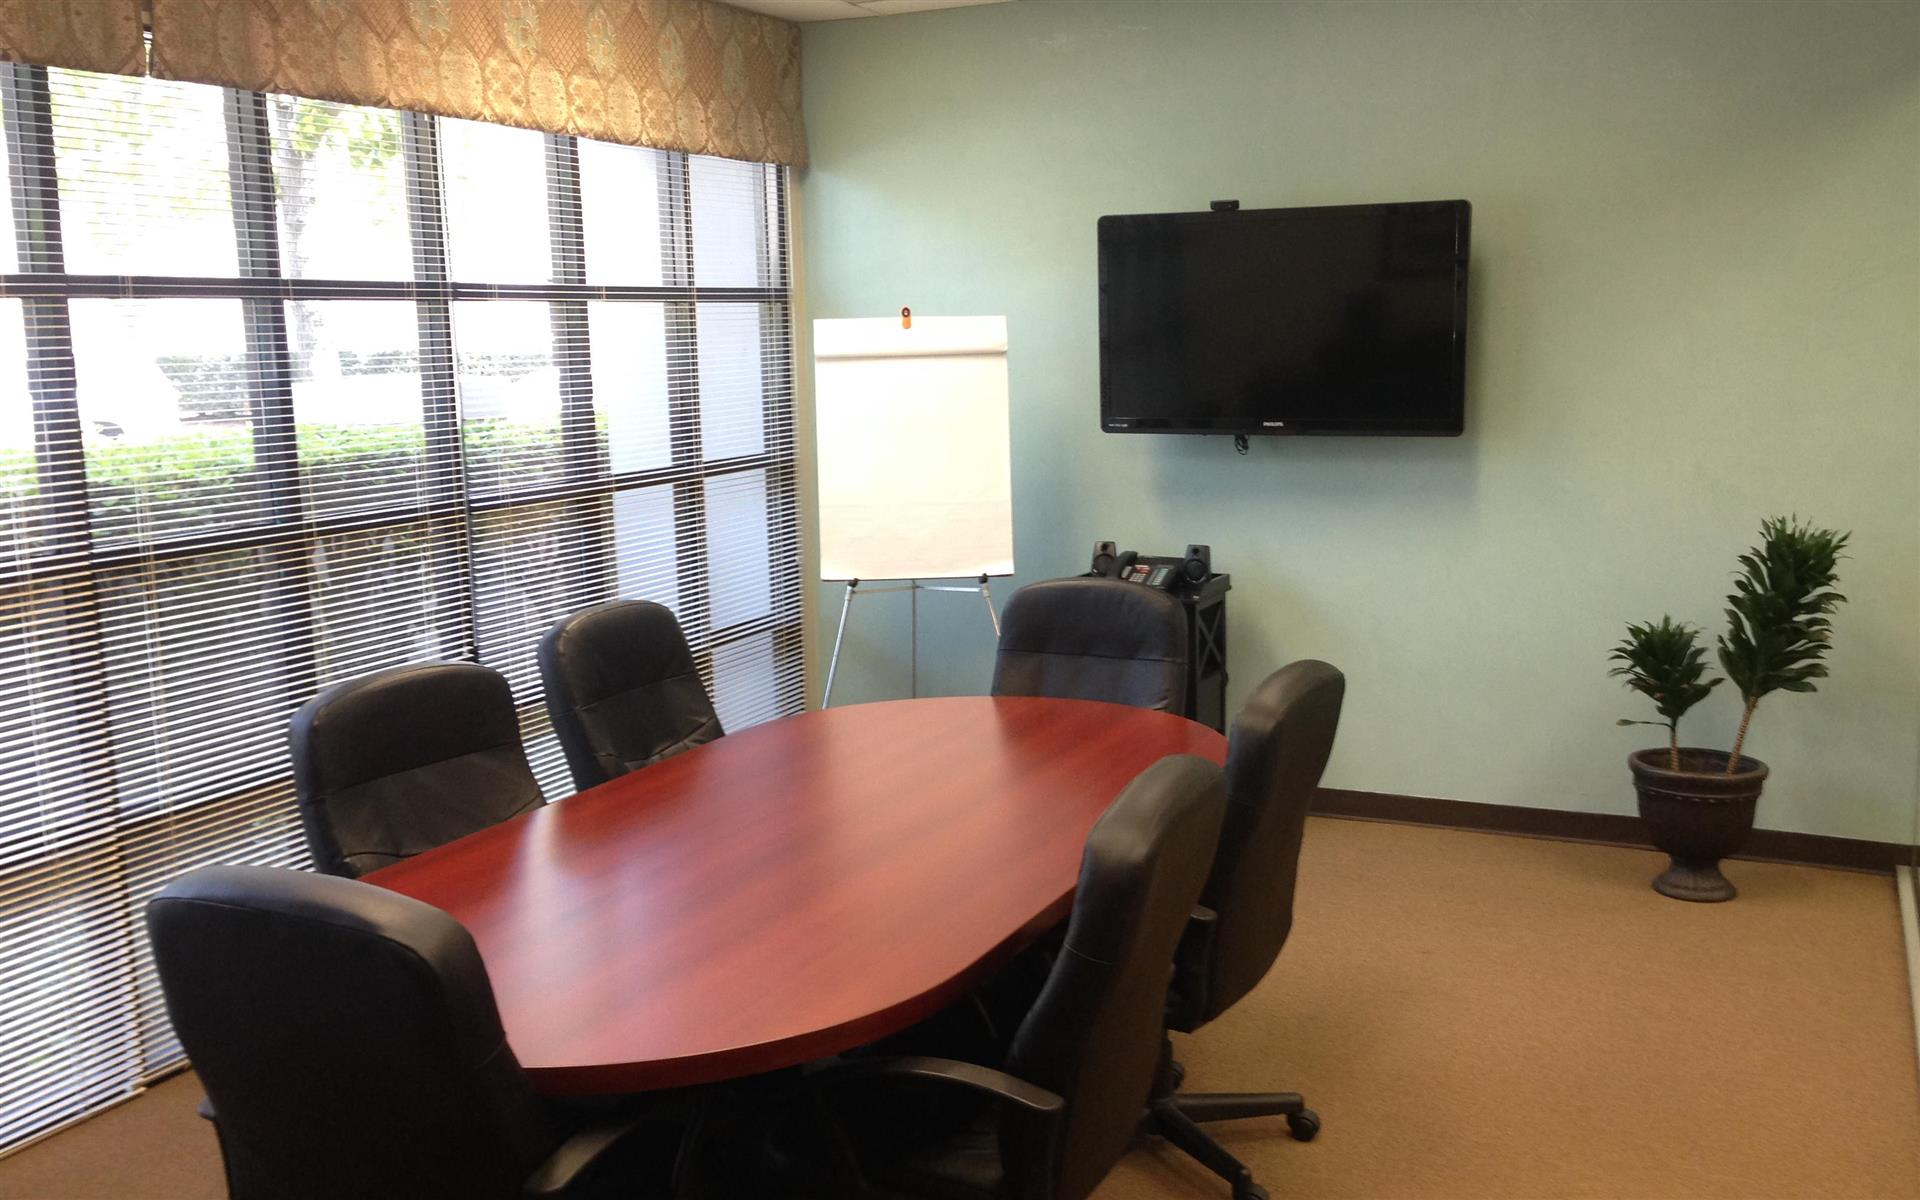 Life By Design - Professional Conference Room w/ Apple TV